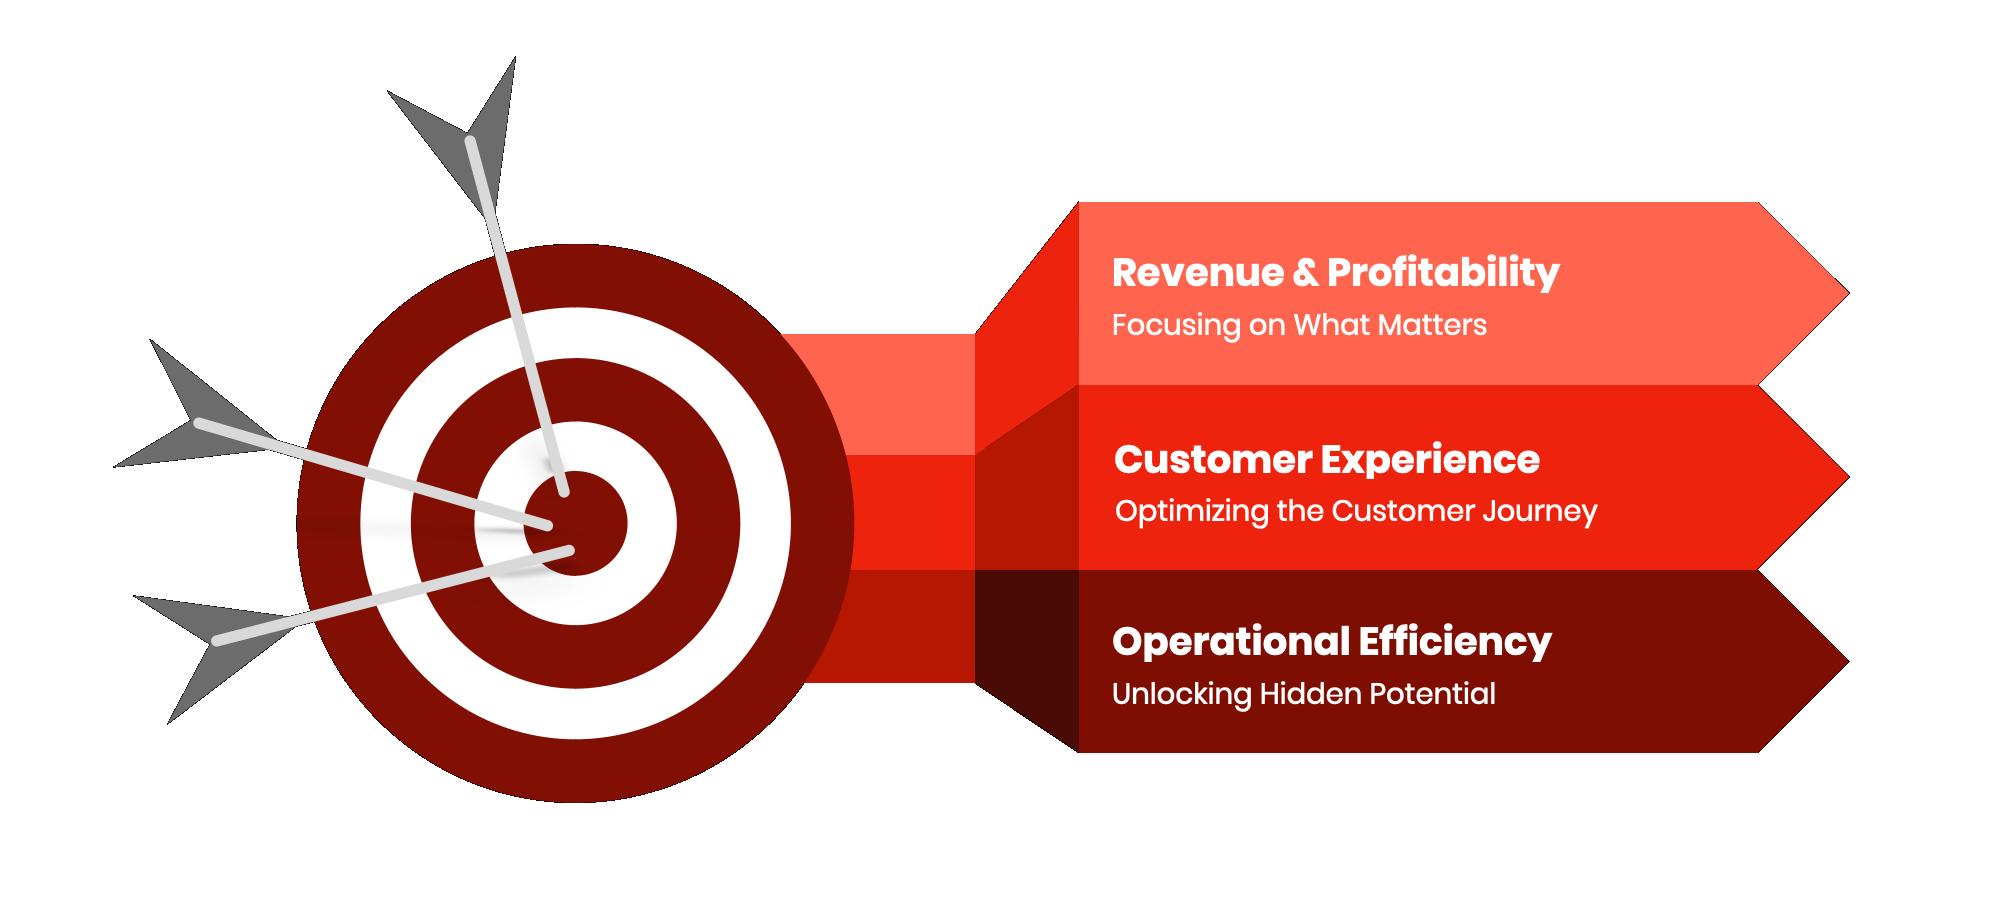 Revenue and profitability, Customer Experience, and Operational Efficiency